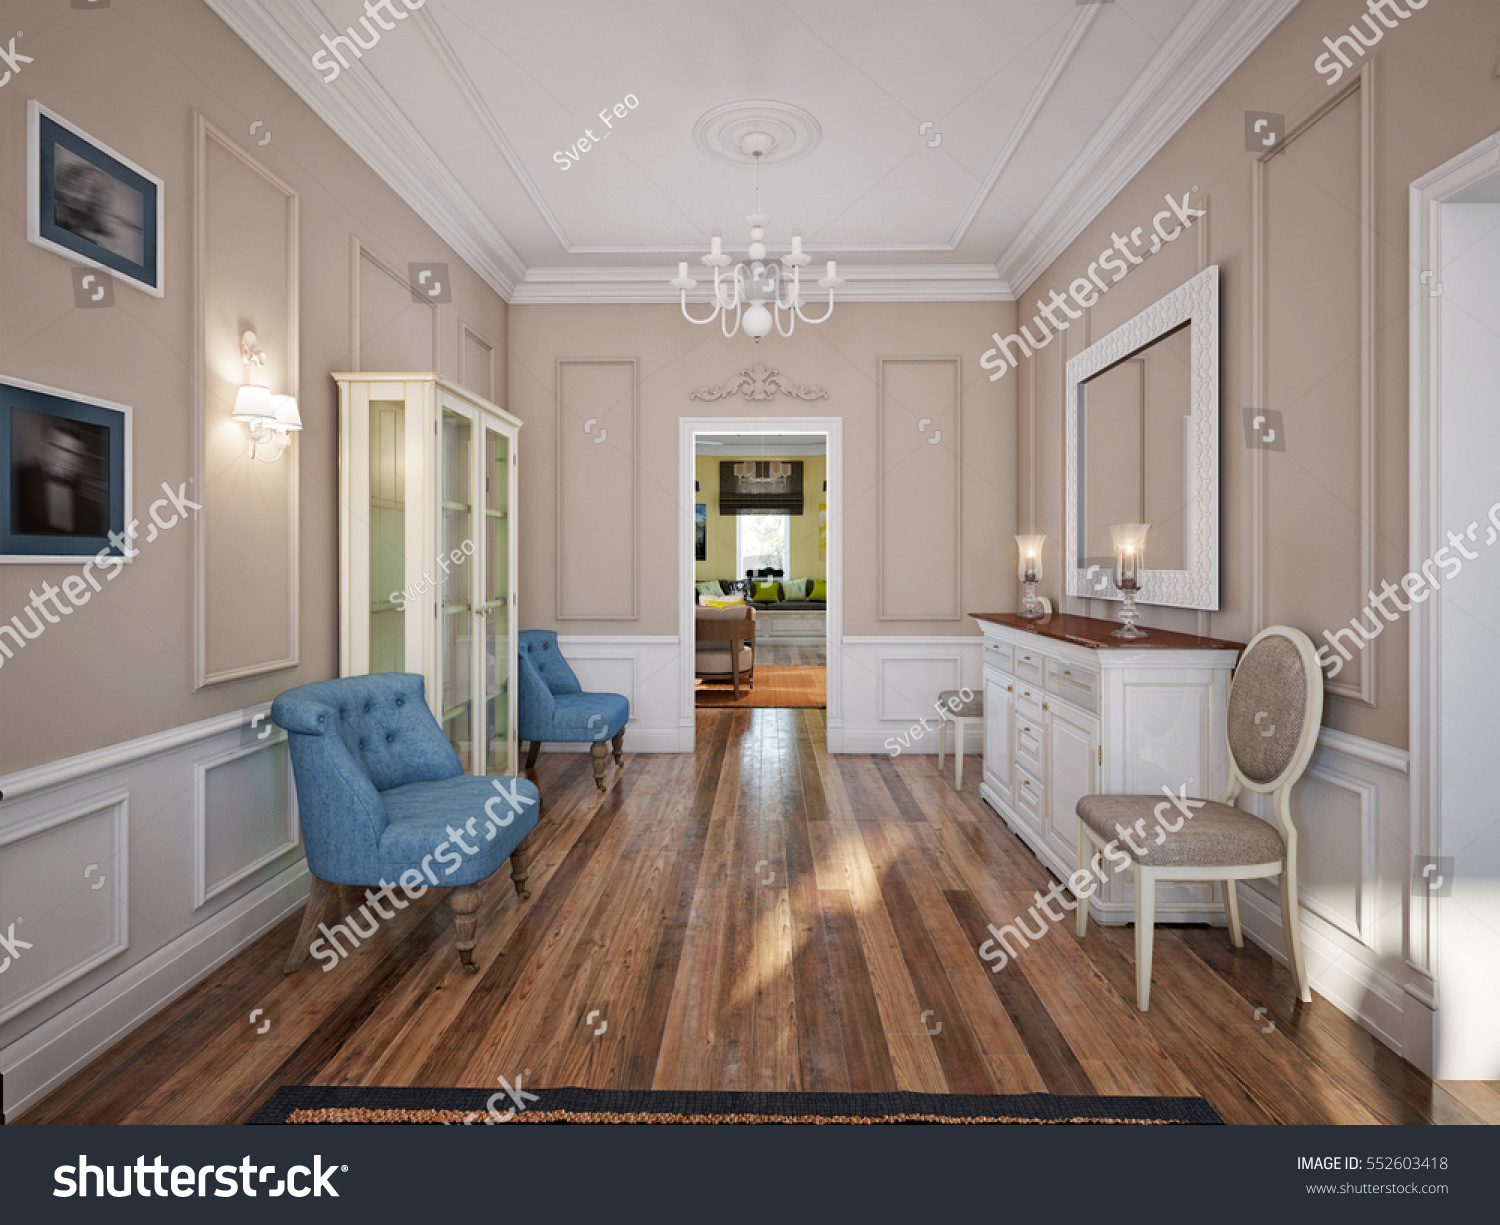 Dining Room In Luxury Home With White Wall Panels And Beige Molding Walls.  3d Render